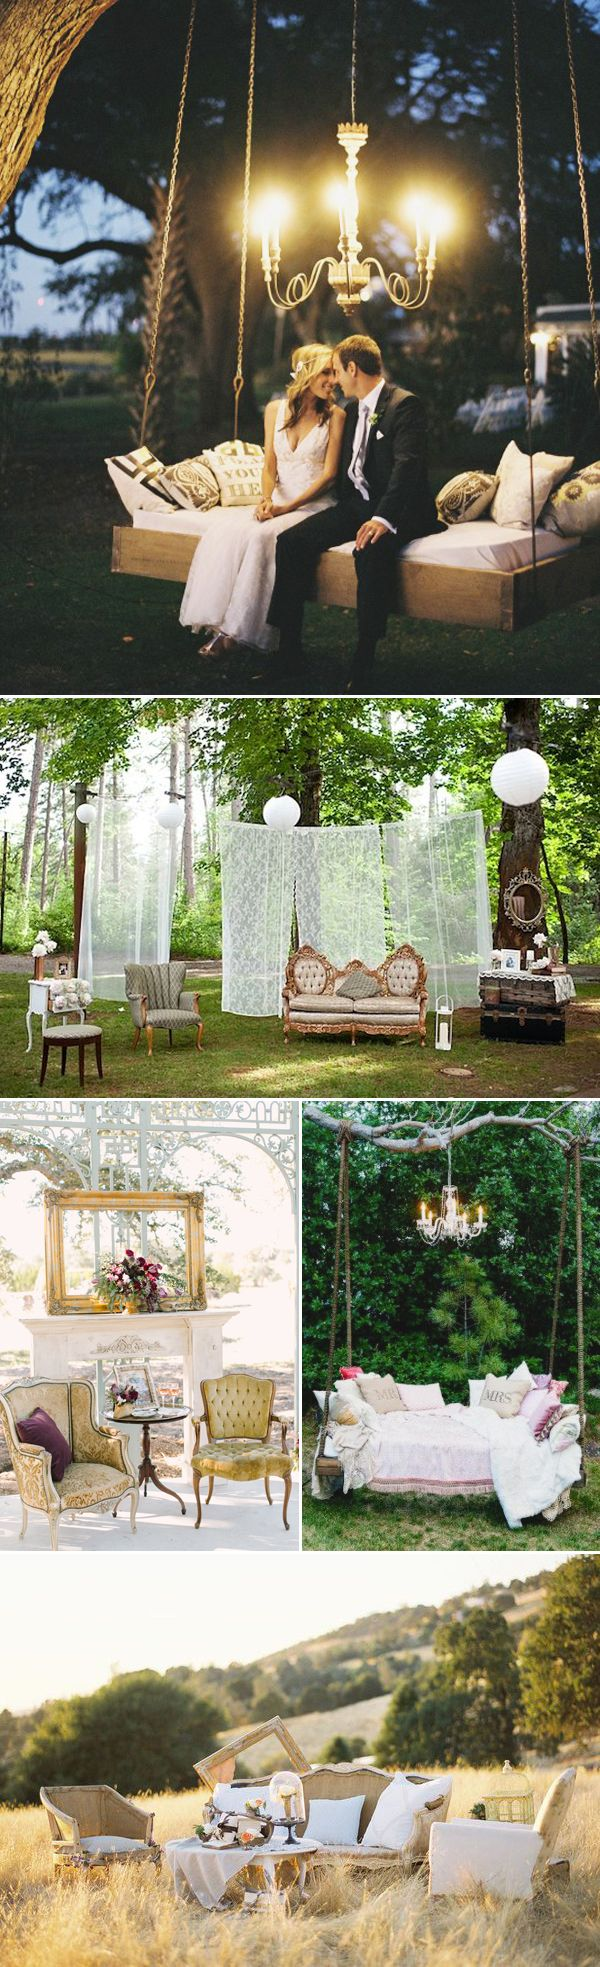 best 25 rustic wedding backdrops ideas on pinterest wedding